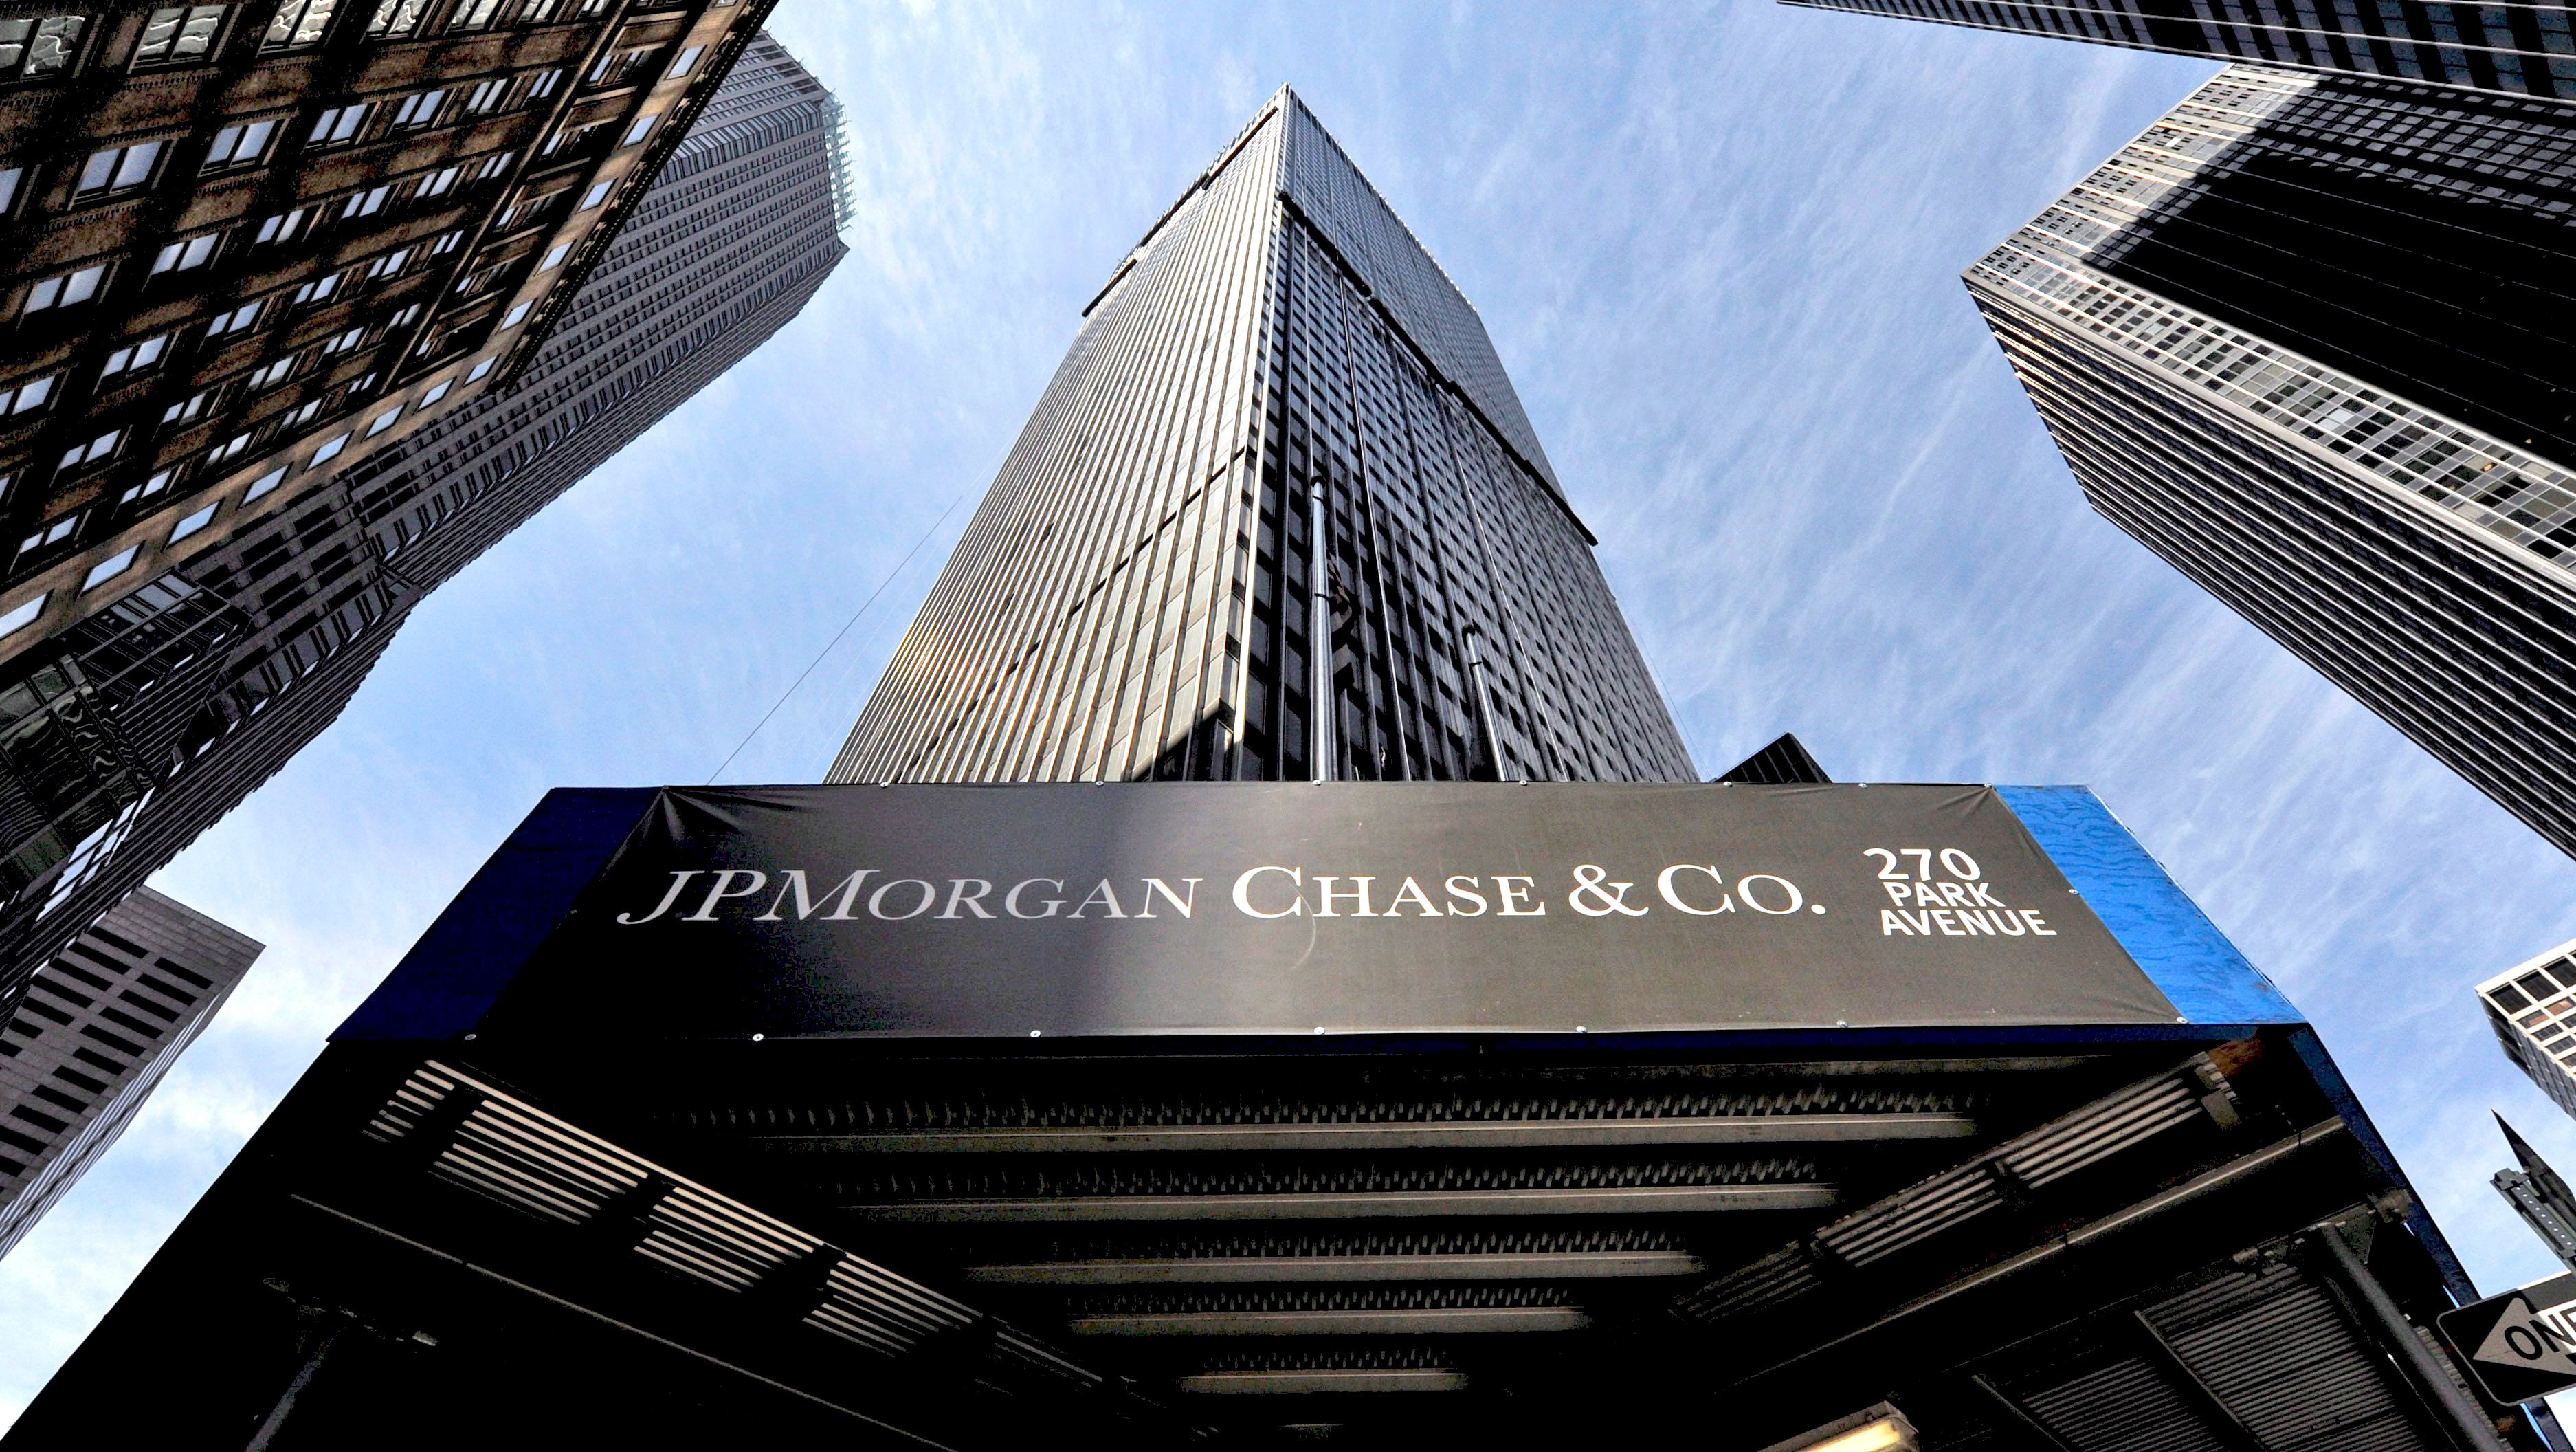 How To Contact JP Morgan Chase Bank Customer Service | How